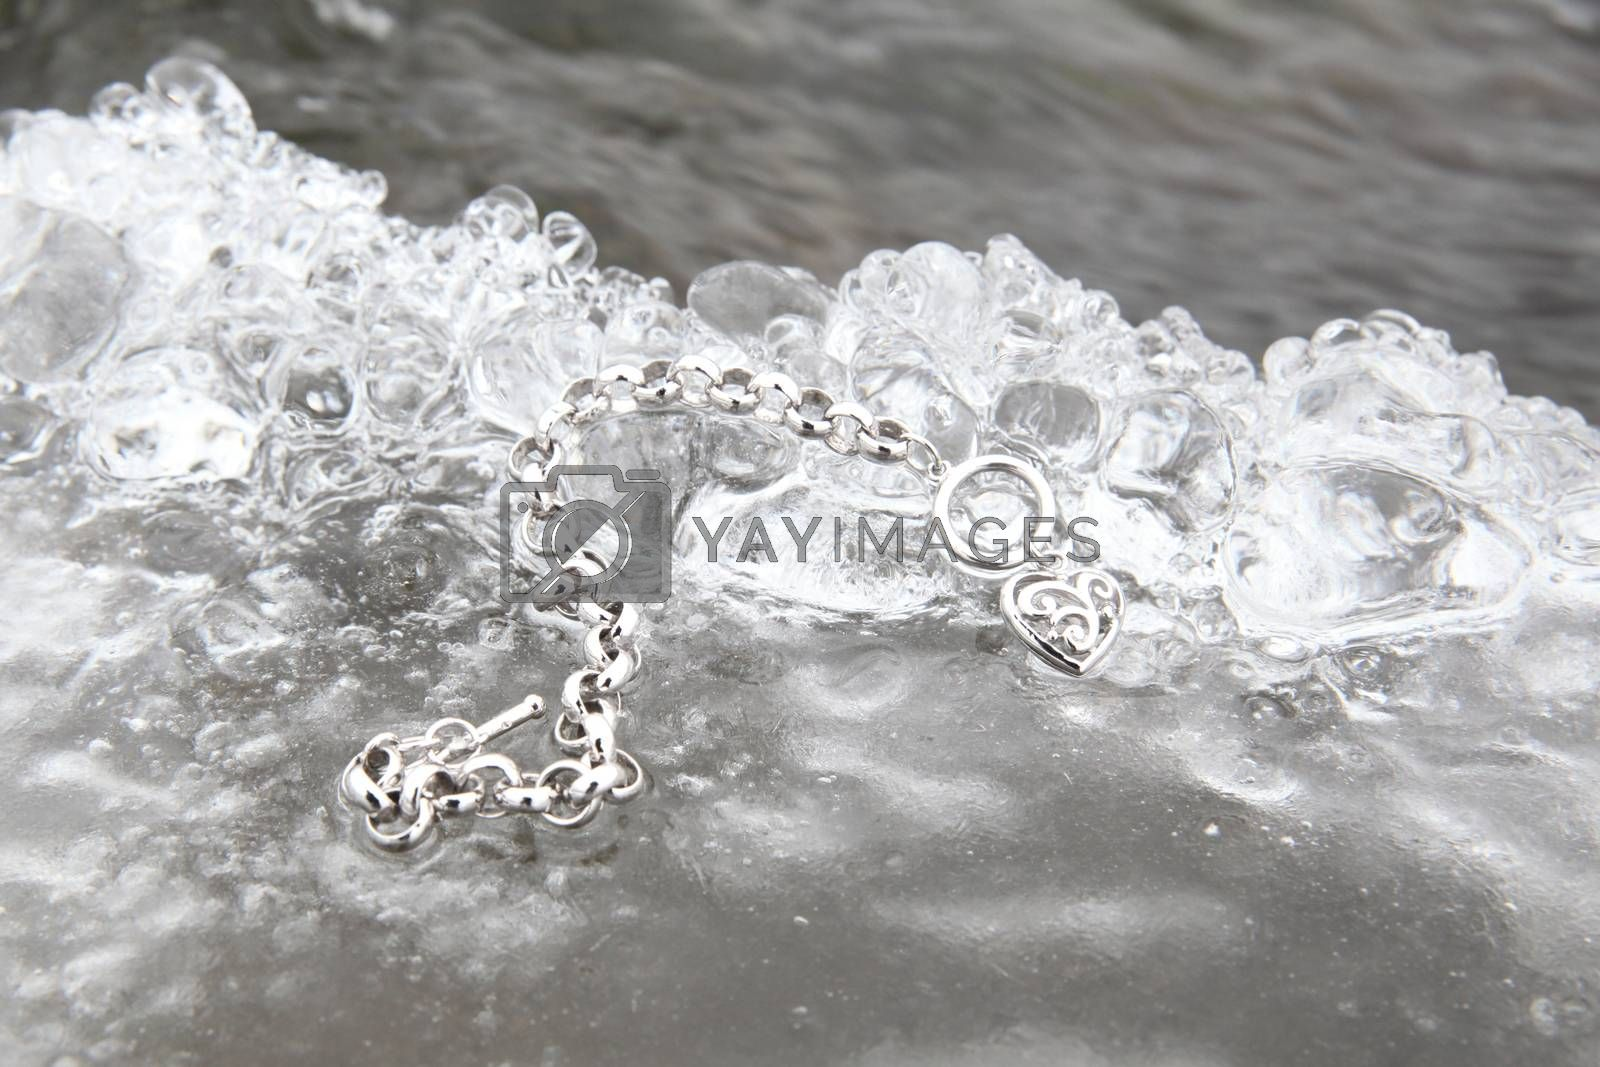 Layer of ice with a heart shaped bracelet charm